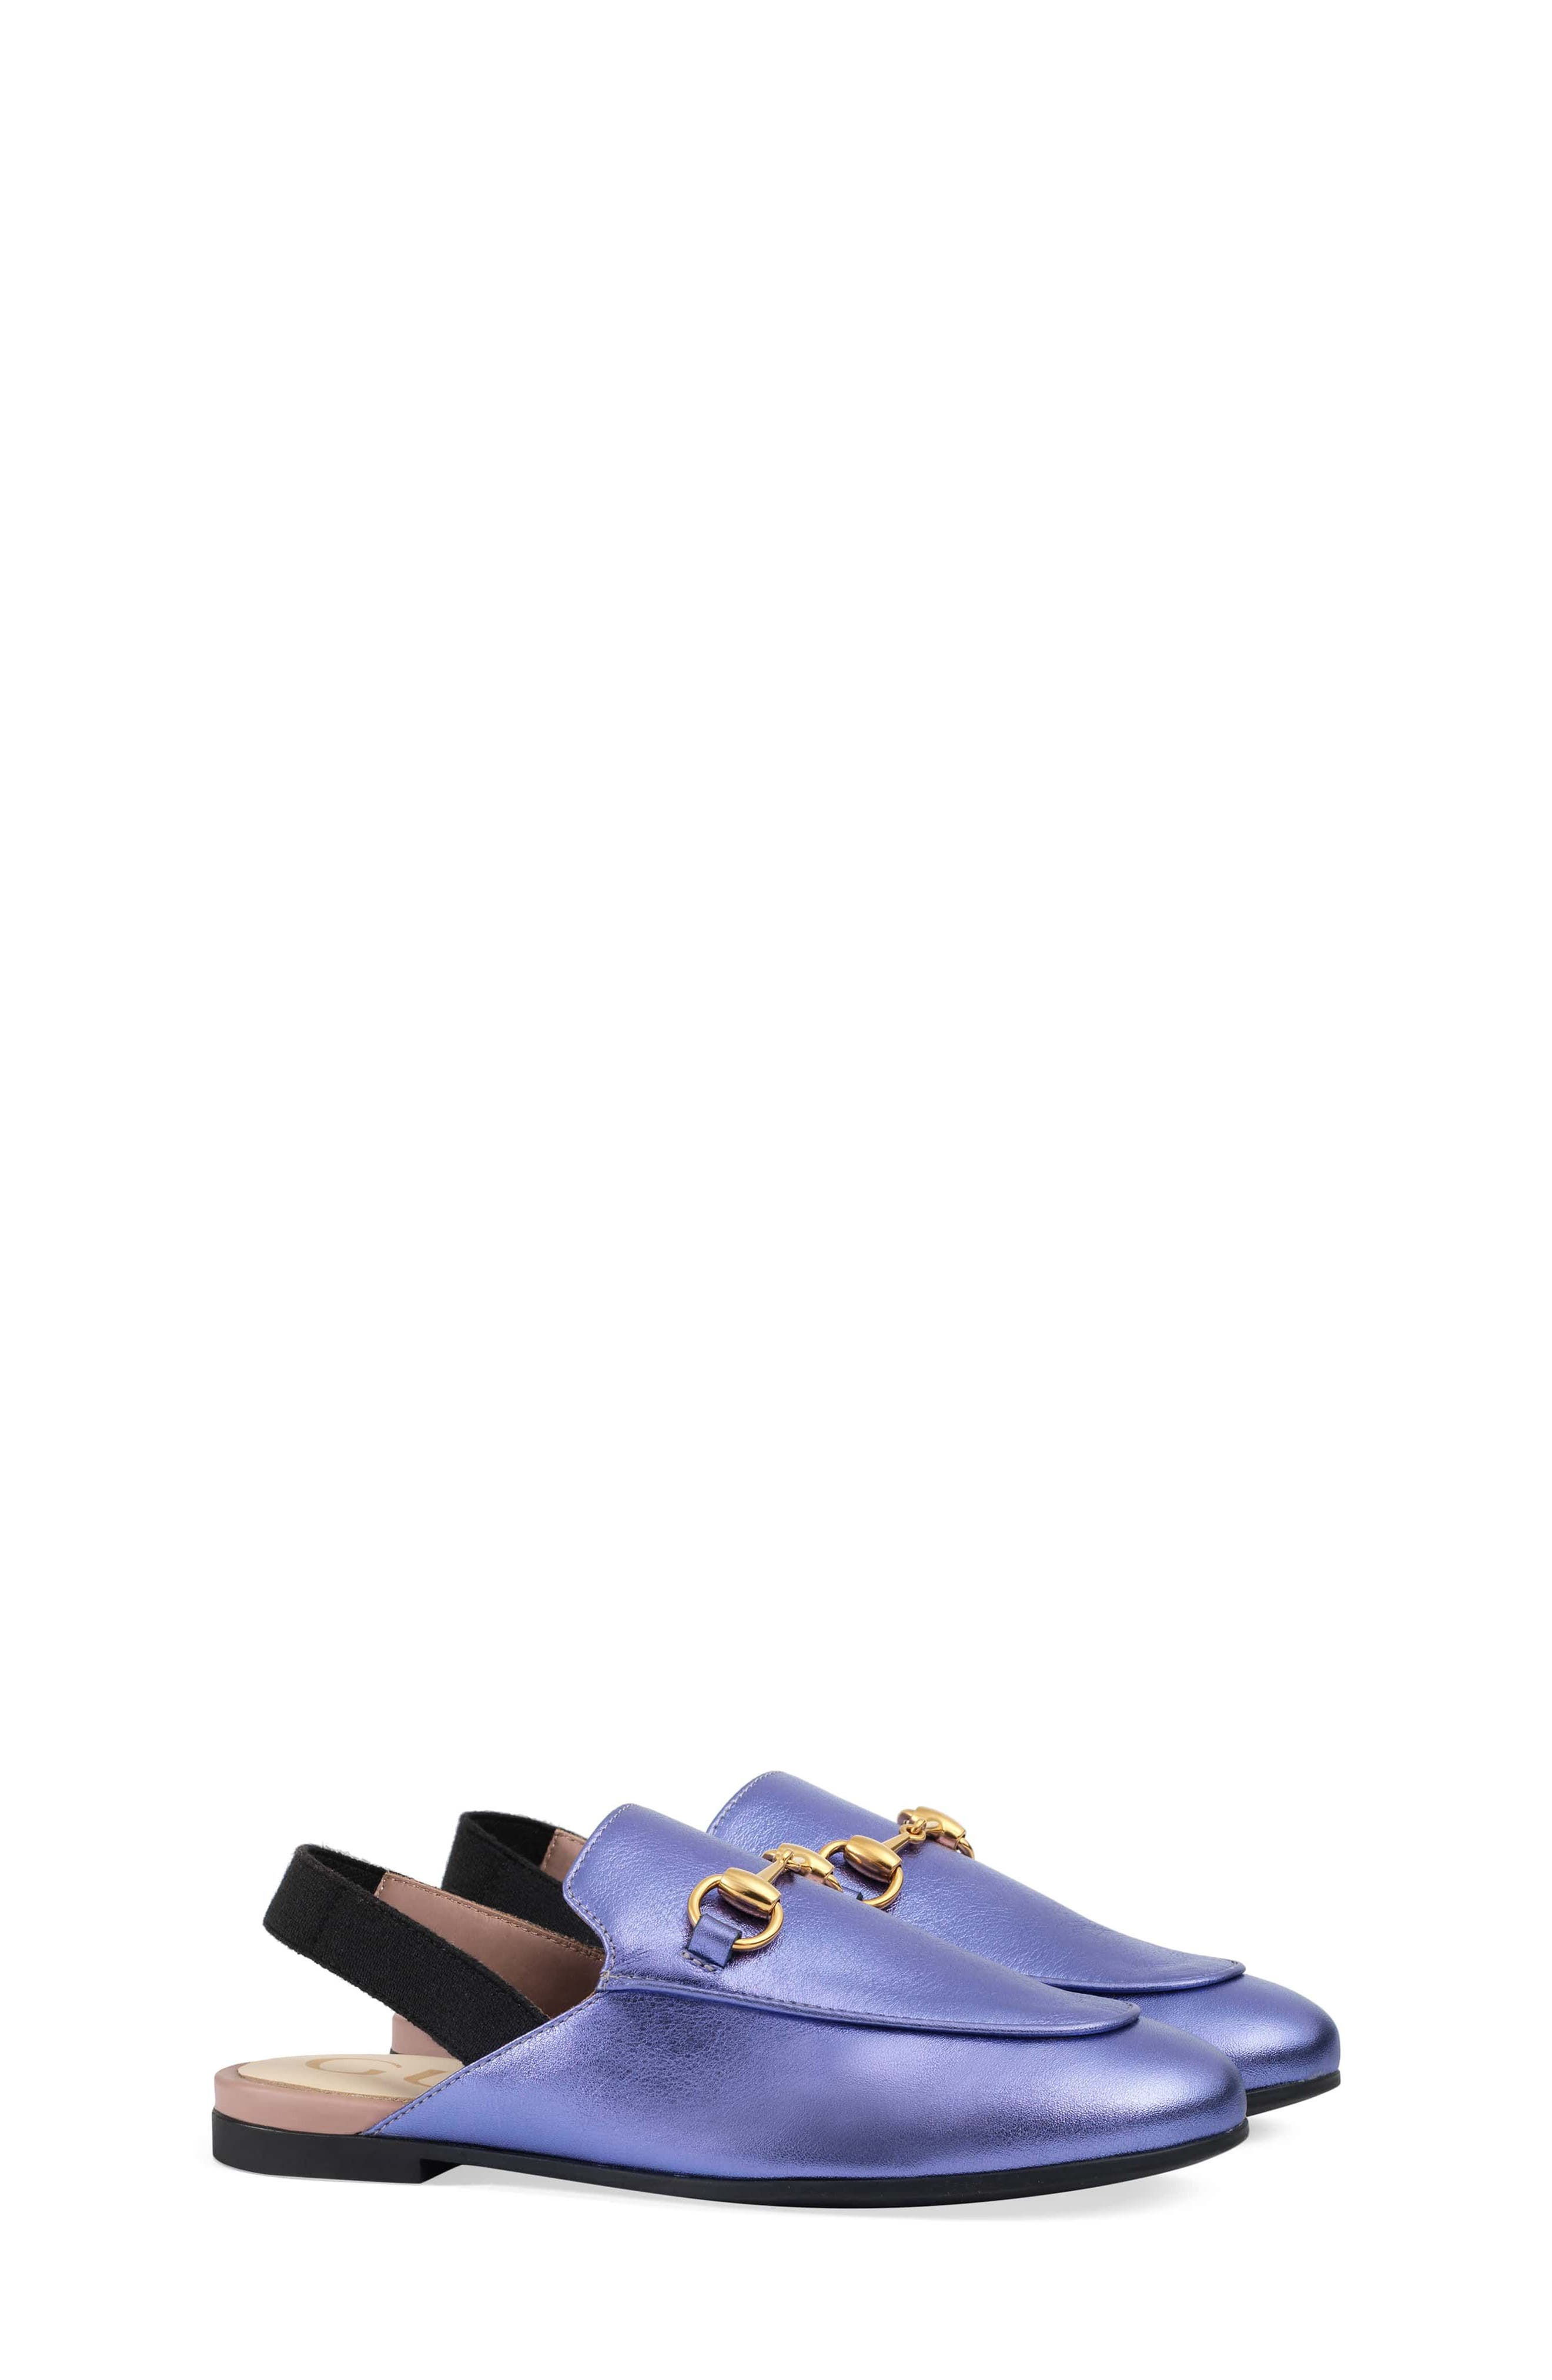 Princetown Loafer Mule,                             Main thumbnail 1, color,                             Light Purple/ Black